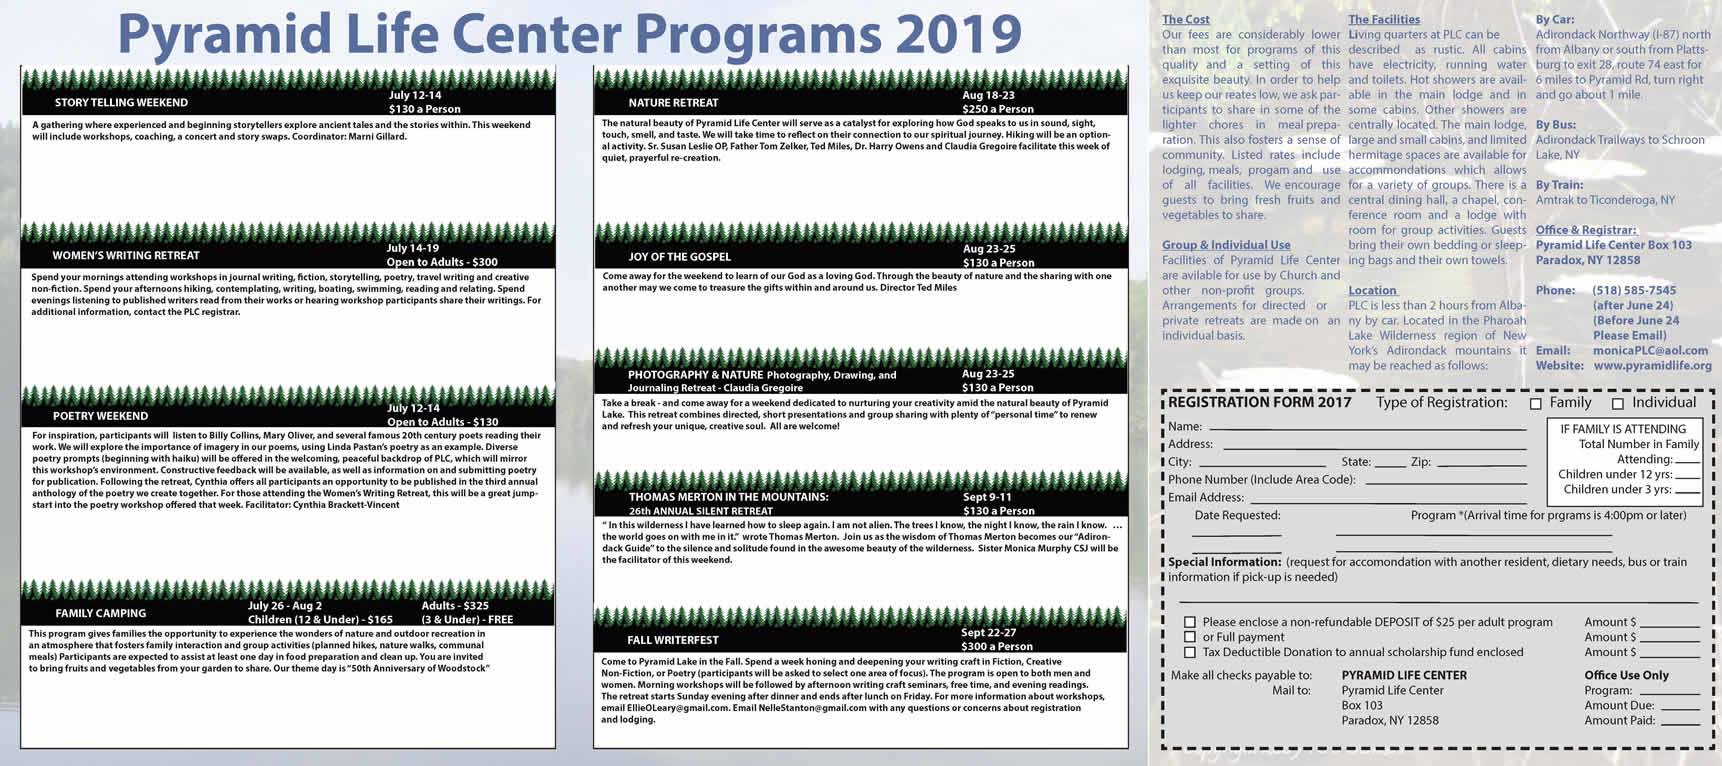 Pyramid Life Center's Program Brochure